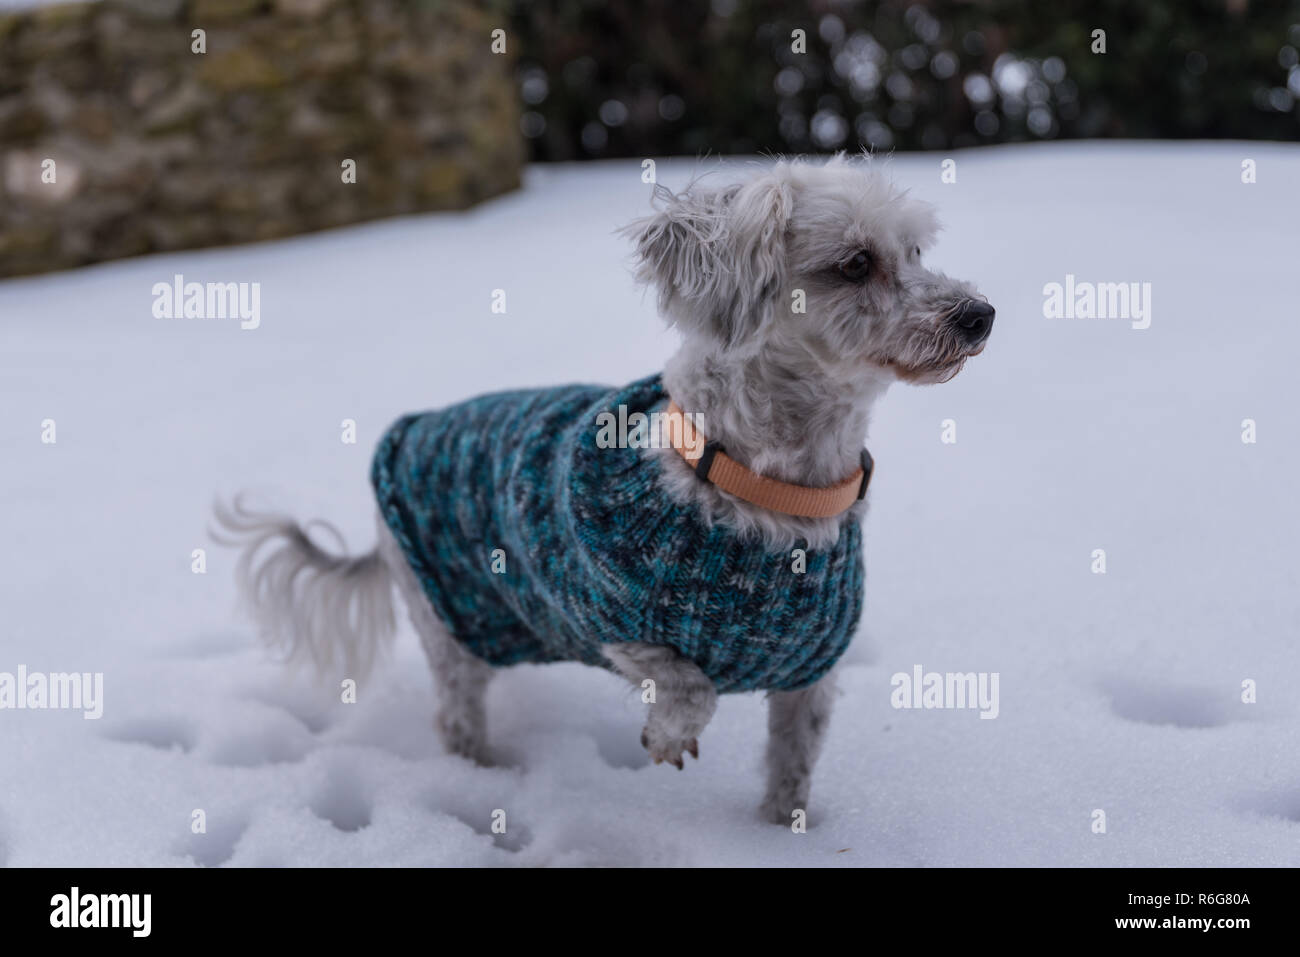 dogs in the snow with dog coat - Stock Image